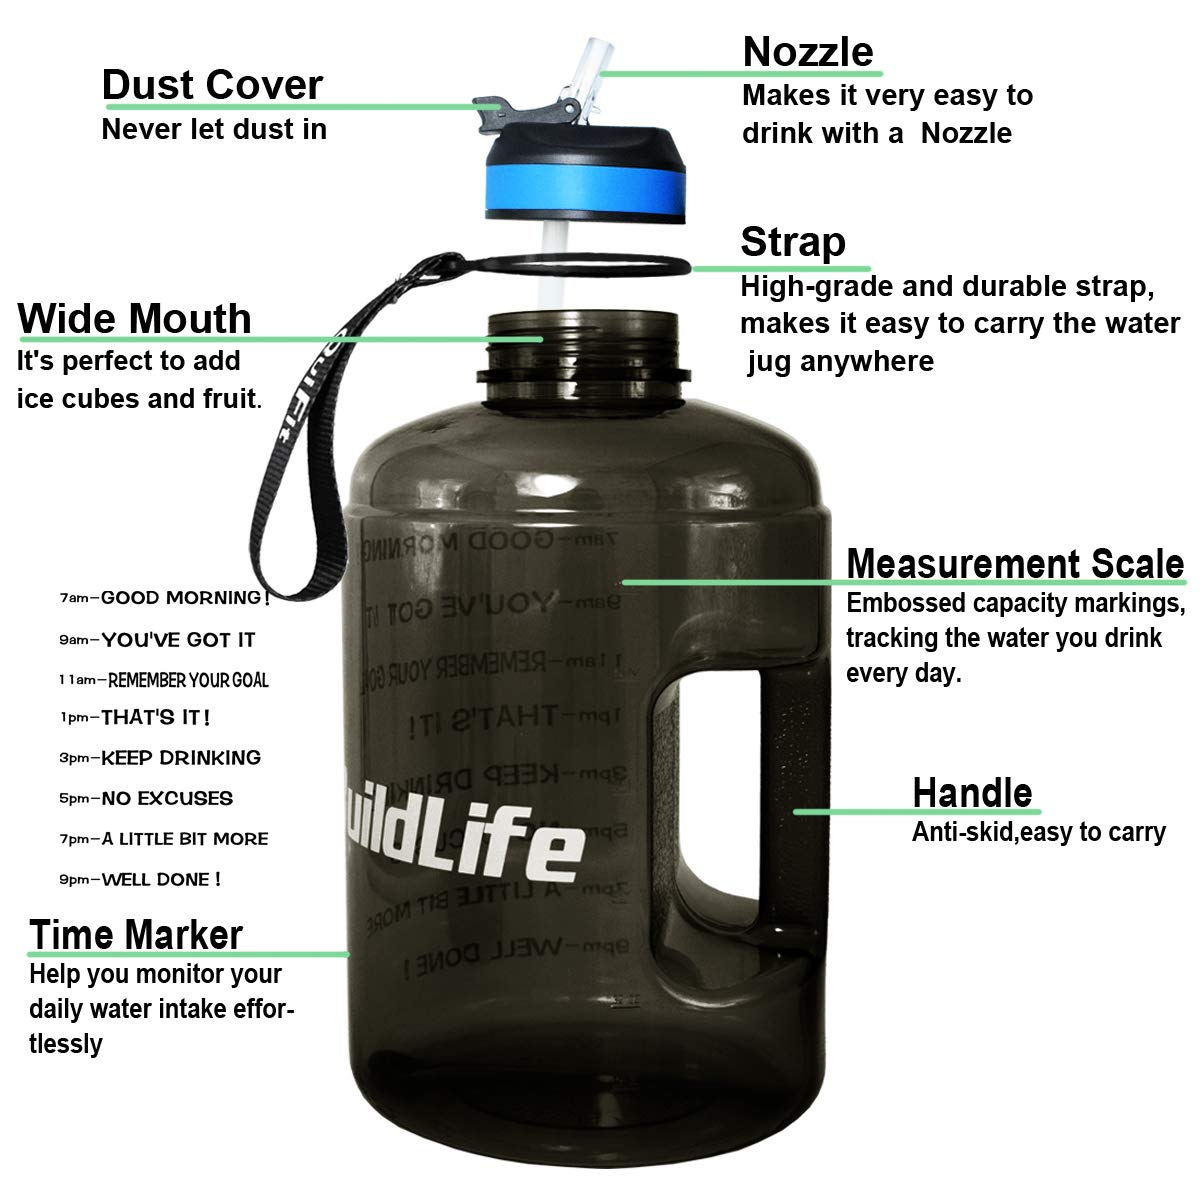 BuildLife Gallon Motivational Water Bottle with Time Marked to Drink More Daily,BPA Free Reusable Gym Sports Outdoor Drinking Large Water Jug 128OZ//73OZ//43OZ